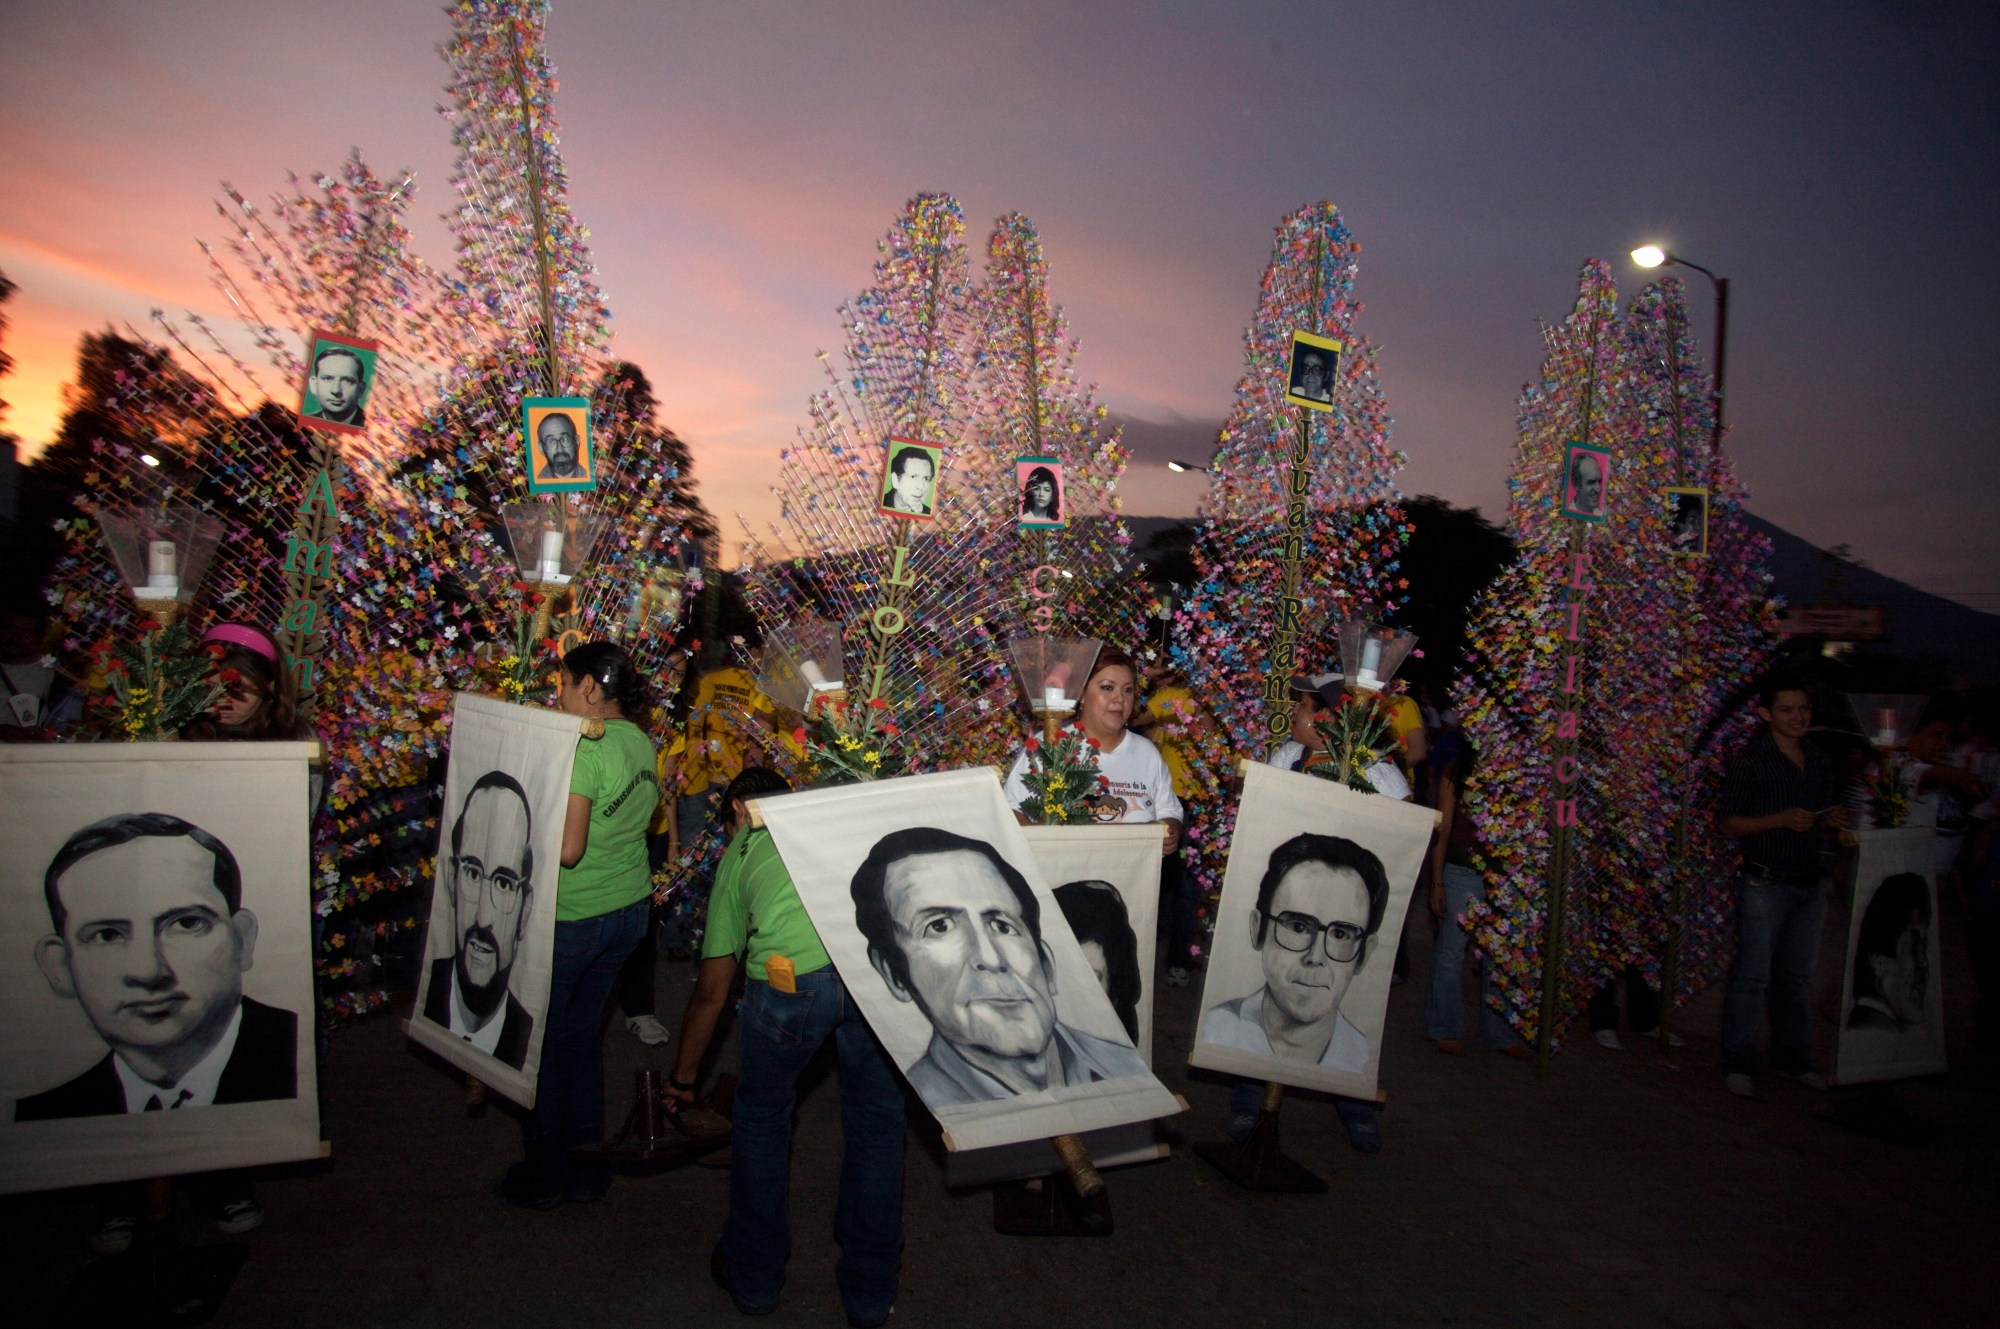 In this Nov. 15, 2008 file photo, people hold banners depicting six Jesuit priests massacred in 1989, during a memorial to mark the 19th anniversary of their death, in San Salvador. For years, attempts within El Salvador to investigate and prosecute the masterminds of the massacre during that country's civil war have been delayed and deflected by legal maneuvers. (Edgar Romero/AP Photo File)